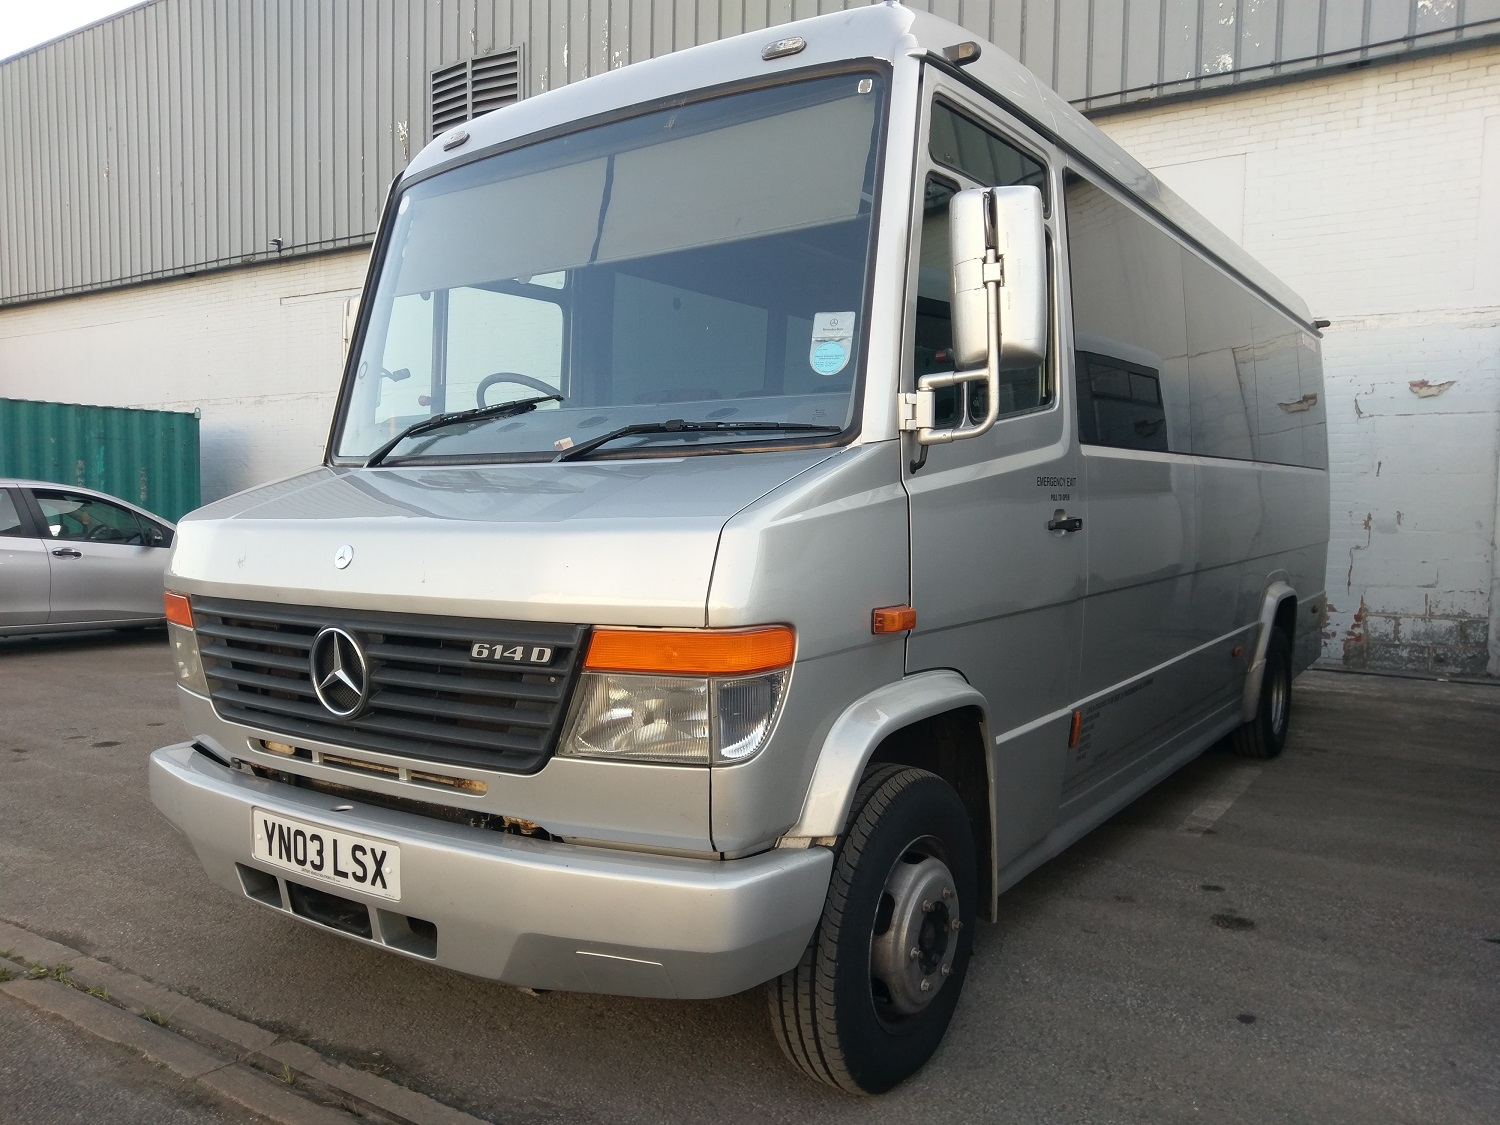 The outside of our Mercedes Vario 24 Seater Minibus. It is silver, has a passenger door on the left side and tinted windows.